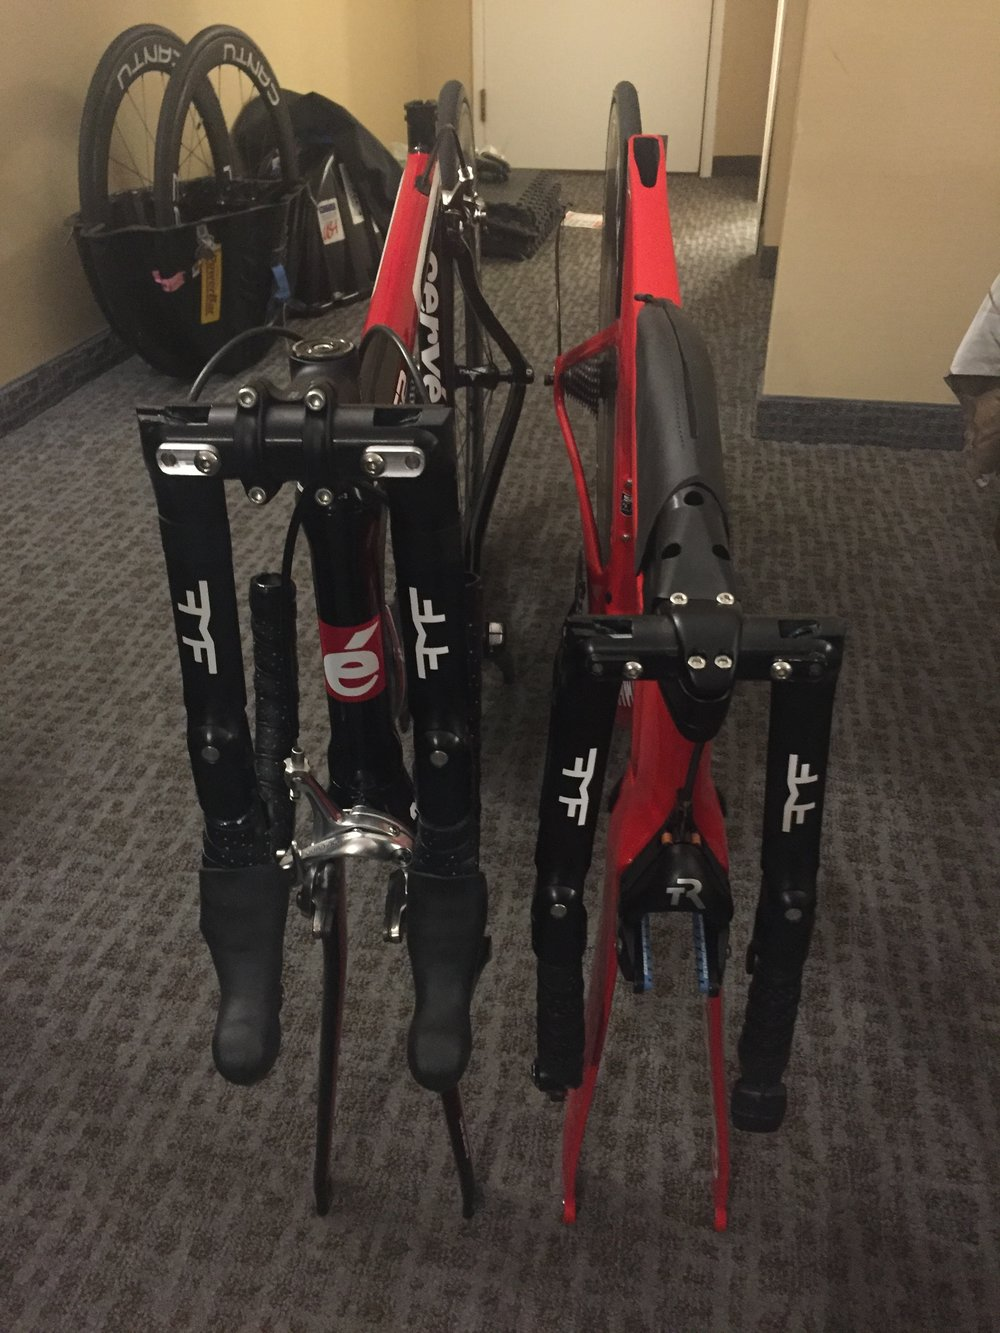 Getting the bikes ready to ship from Interbike - Doesn't get more compact than that!